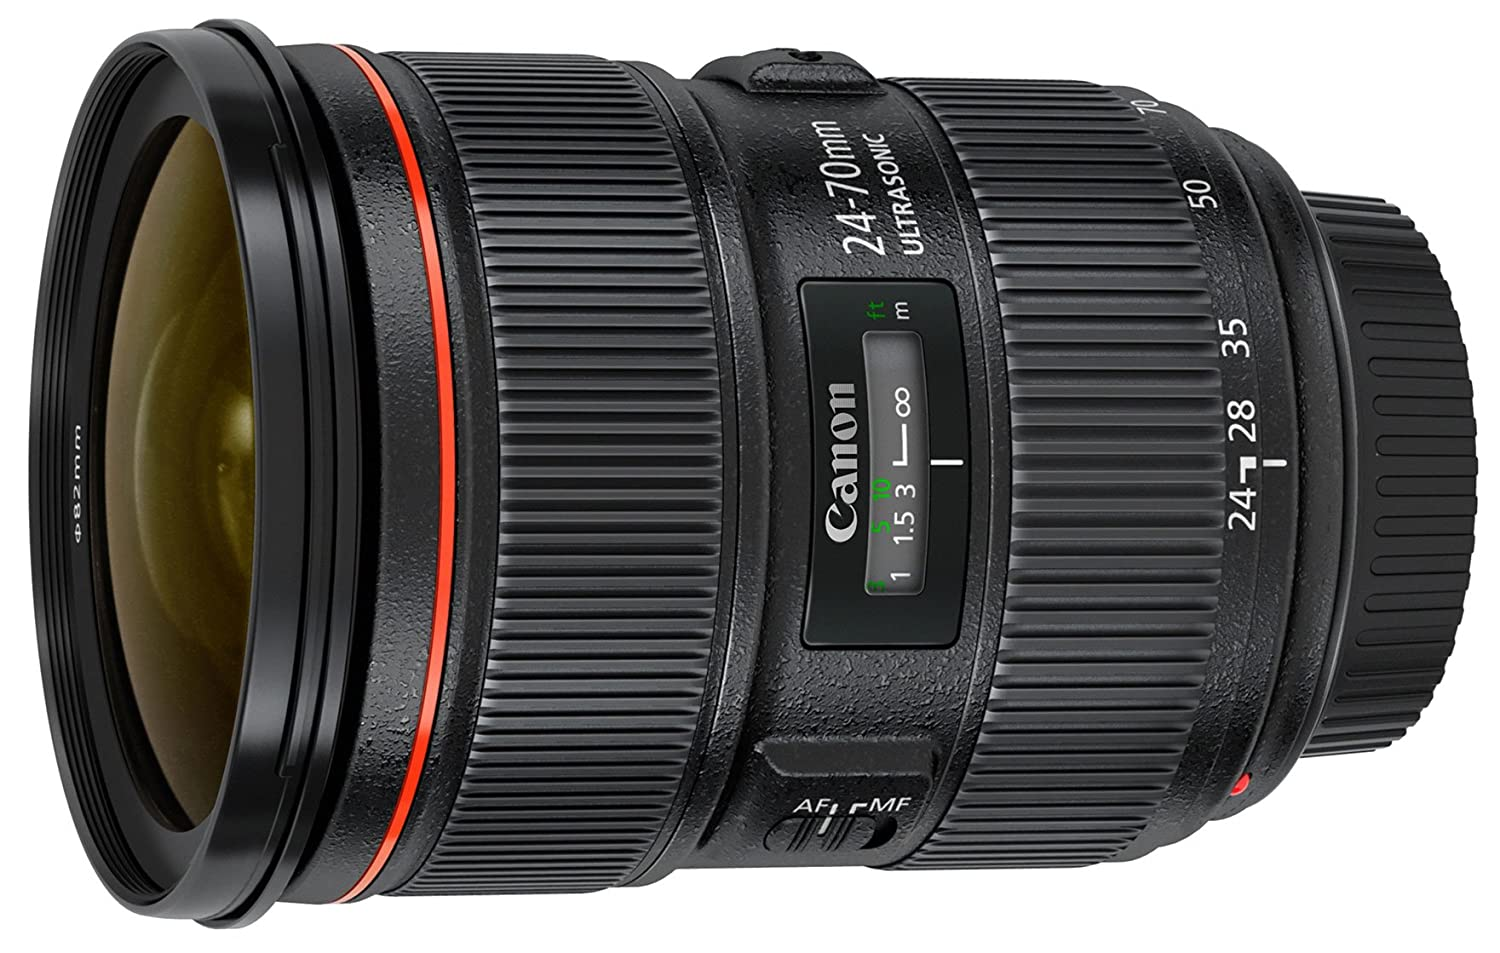 Canon EF 24-70mm F/2.8L II USM Standard Zoom Lens for Canon